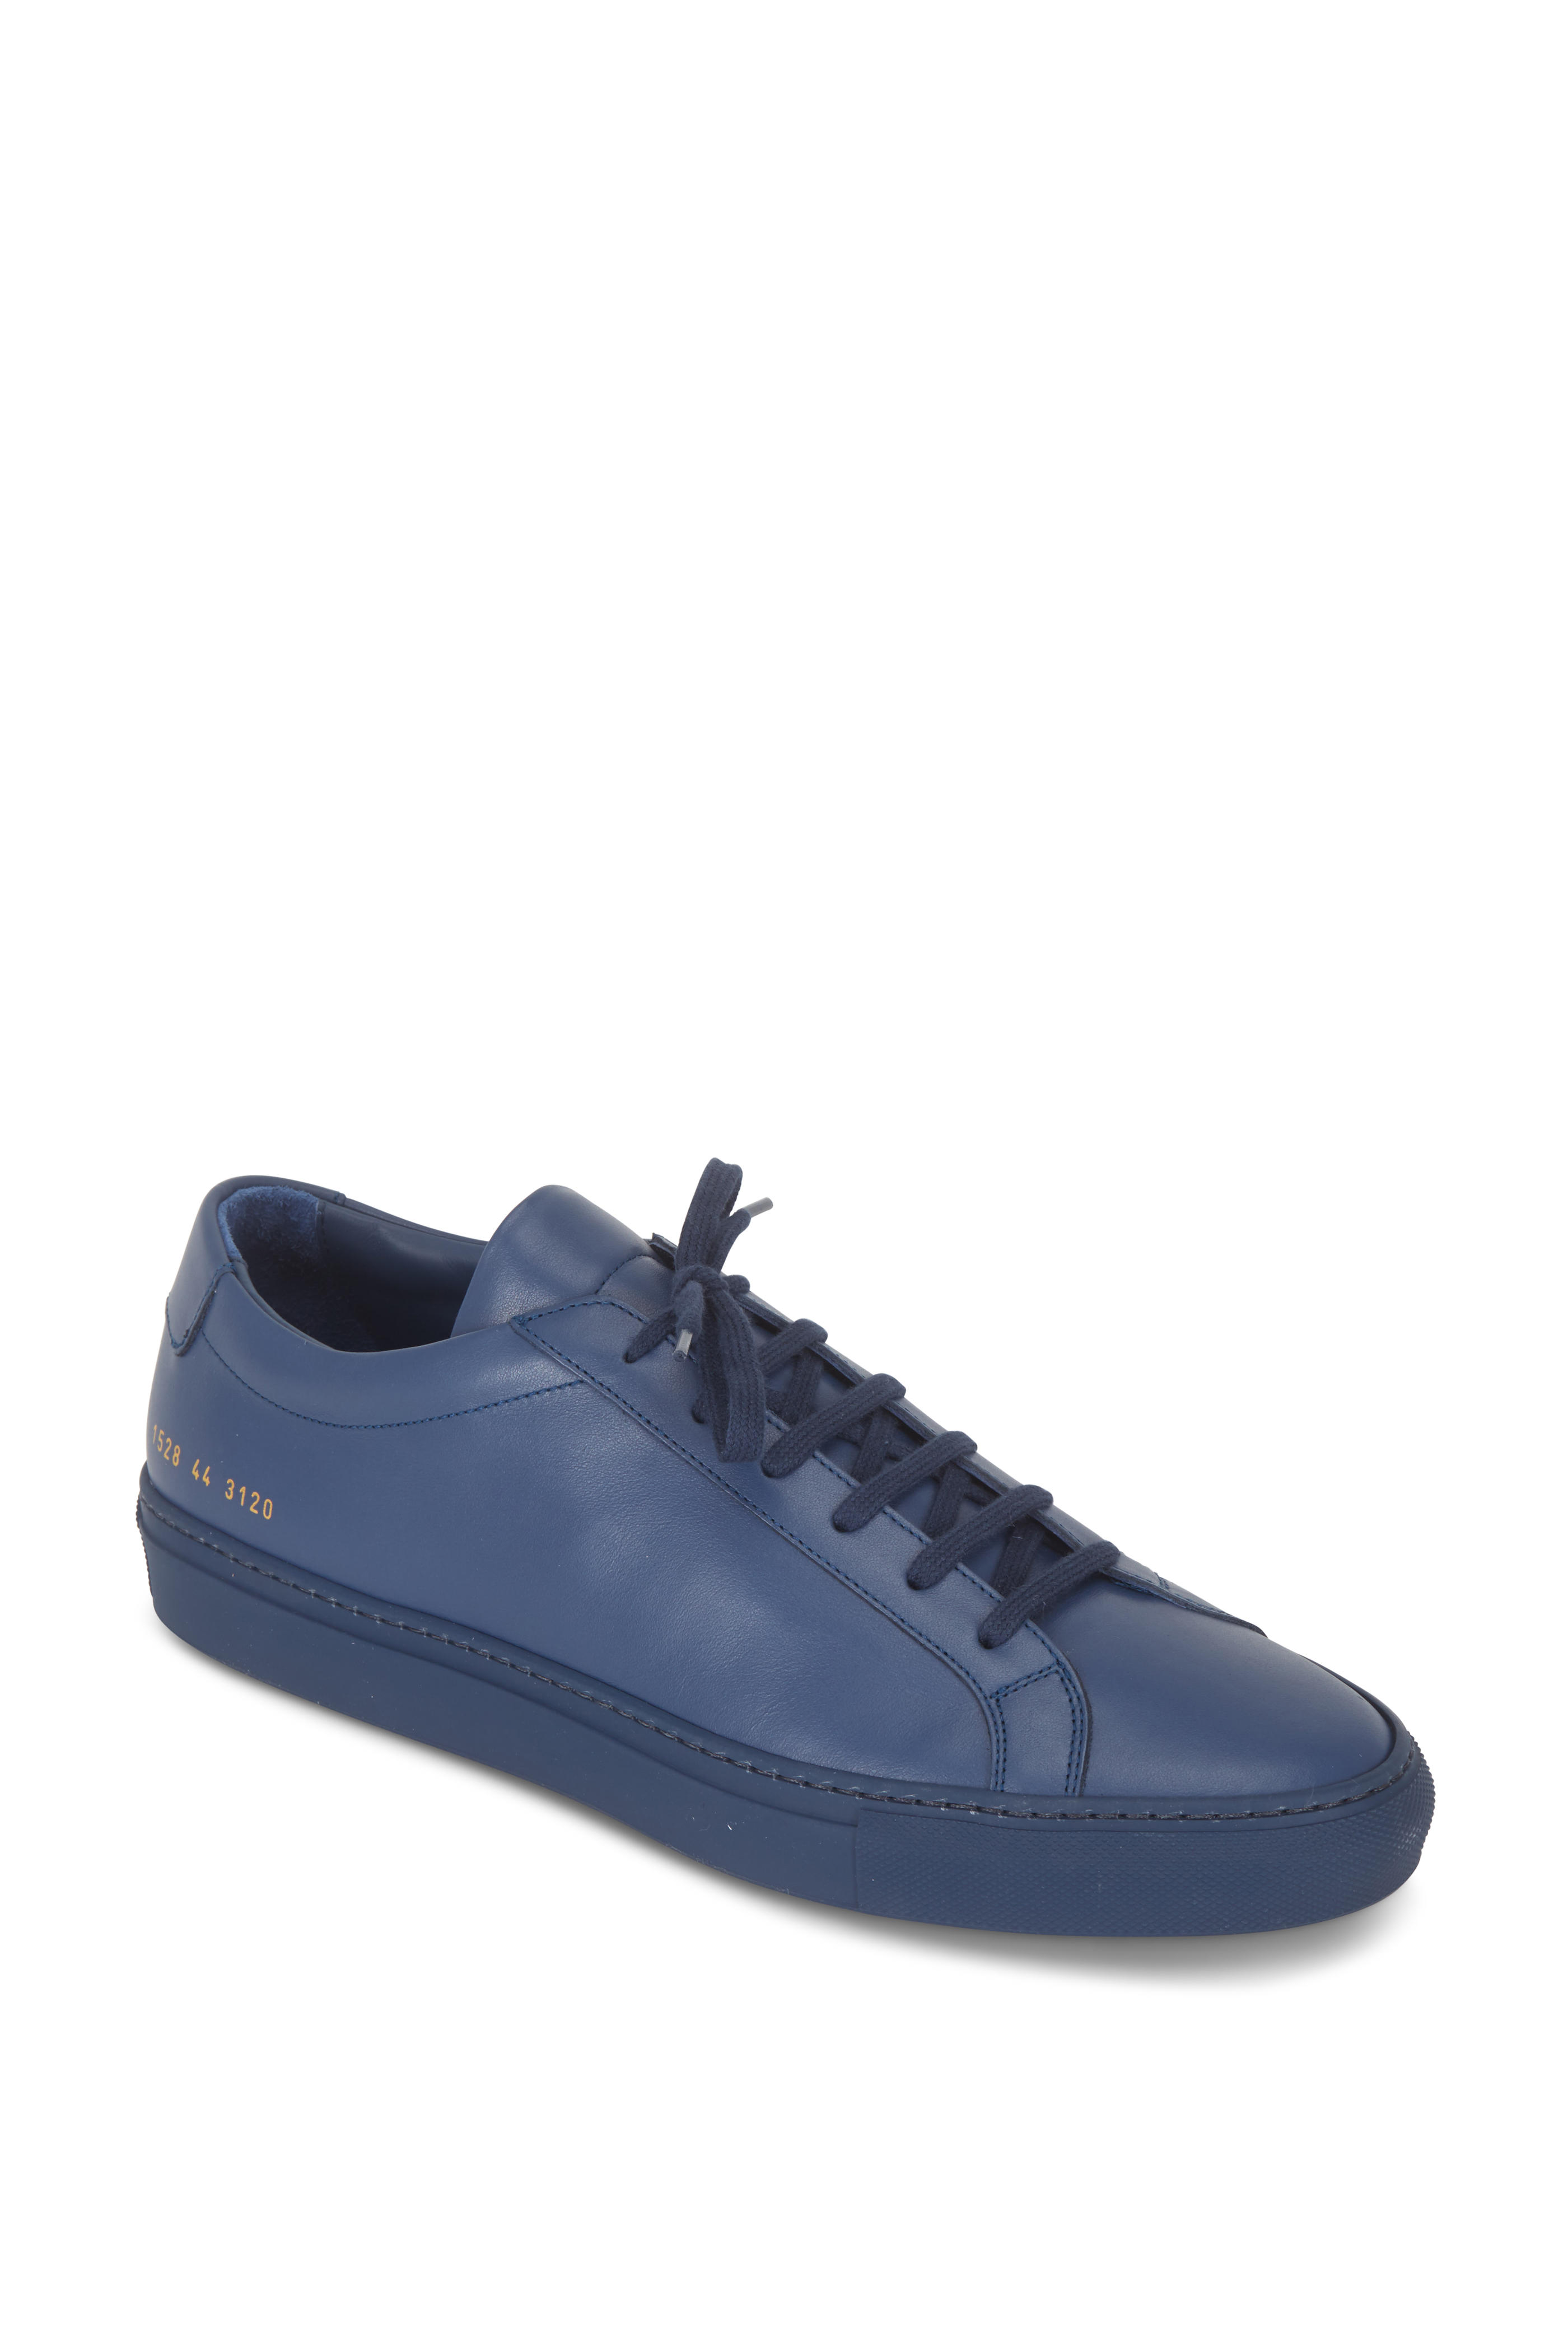 89f74c0564e79 Common Projects - Achilles Navy Blue Leather Low Top Sneaker ...